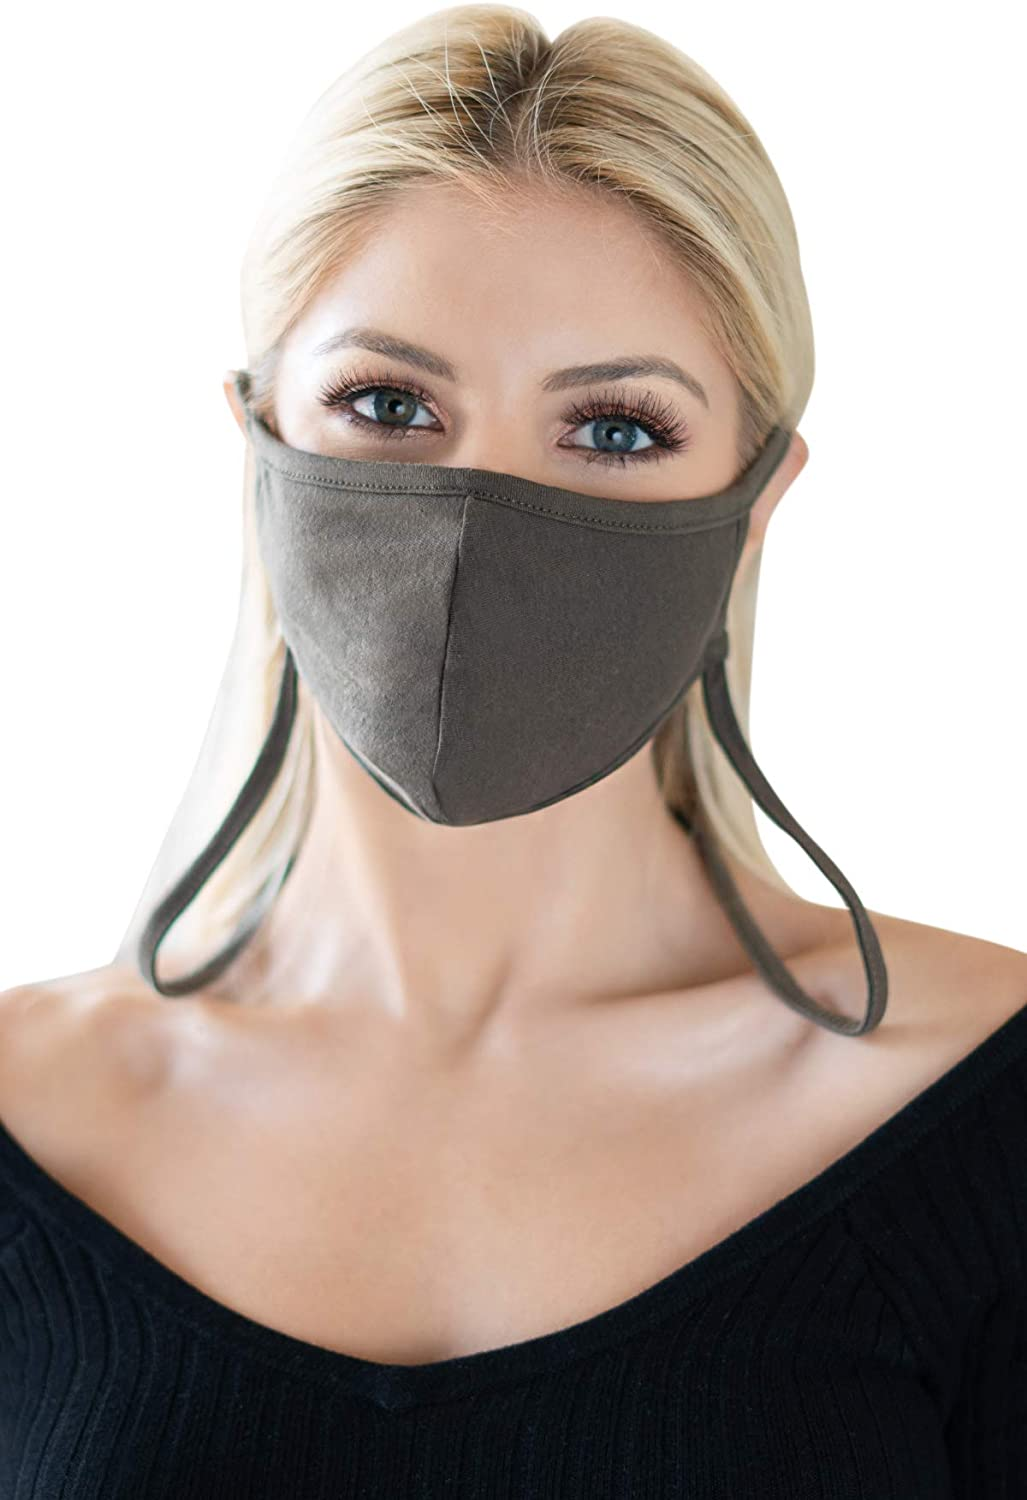 Reusable Fabric Face Mask Covering with Filter Insert Pocket Unisex - Washable Breathable Print Cloth Mouth Shield Protection Comfy Men Women (Adjustable Neck Strap/Arched - Olive)